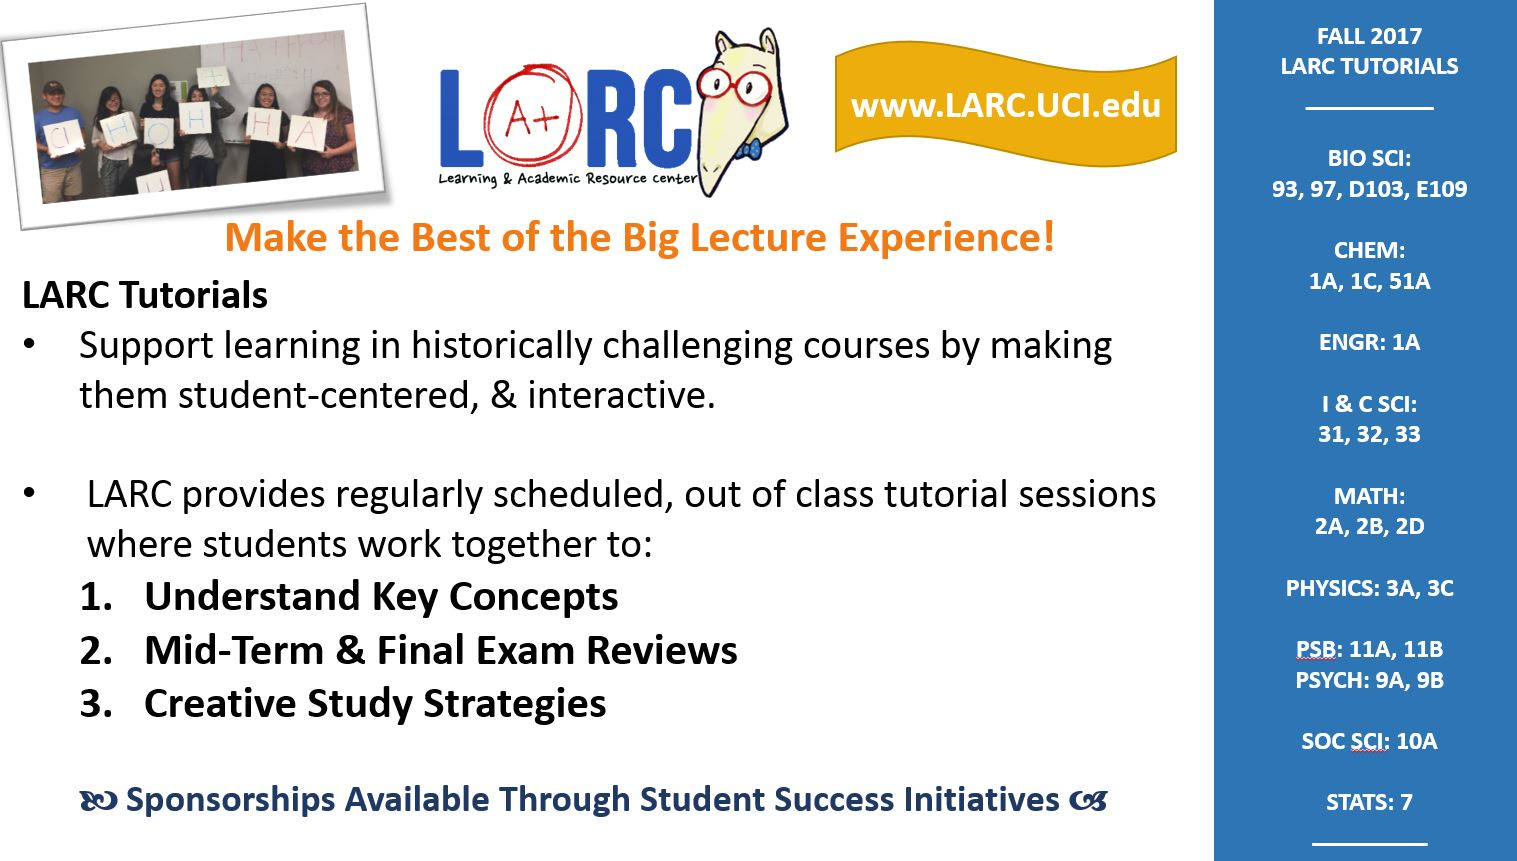 Fall 2017 LARC Tutorials